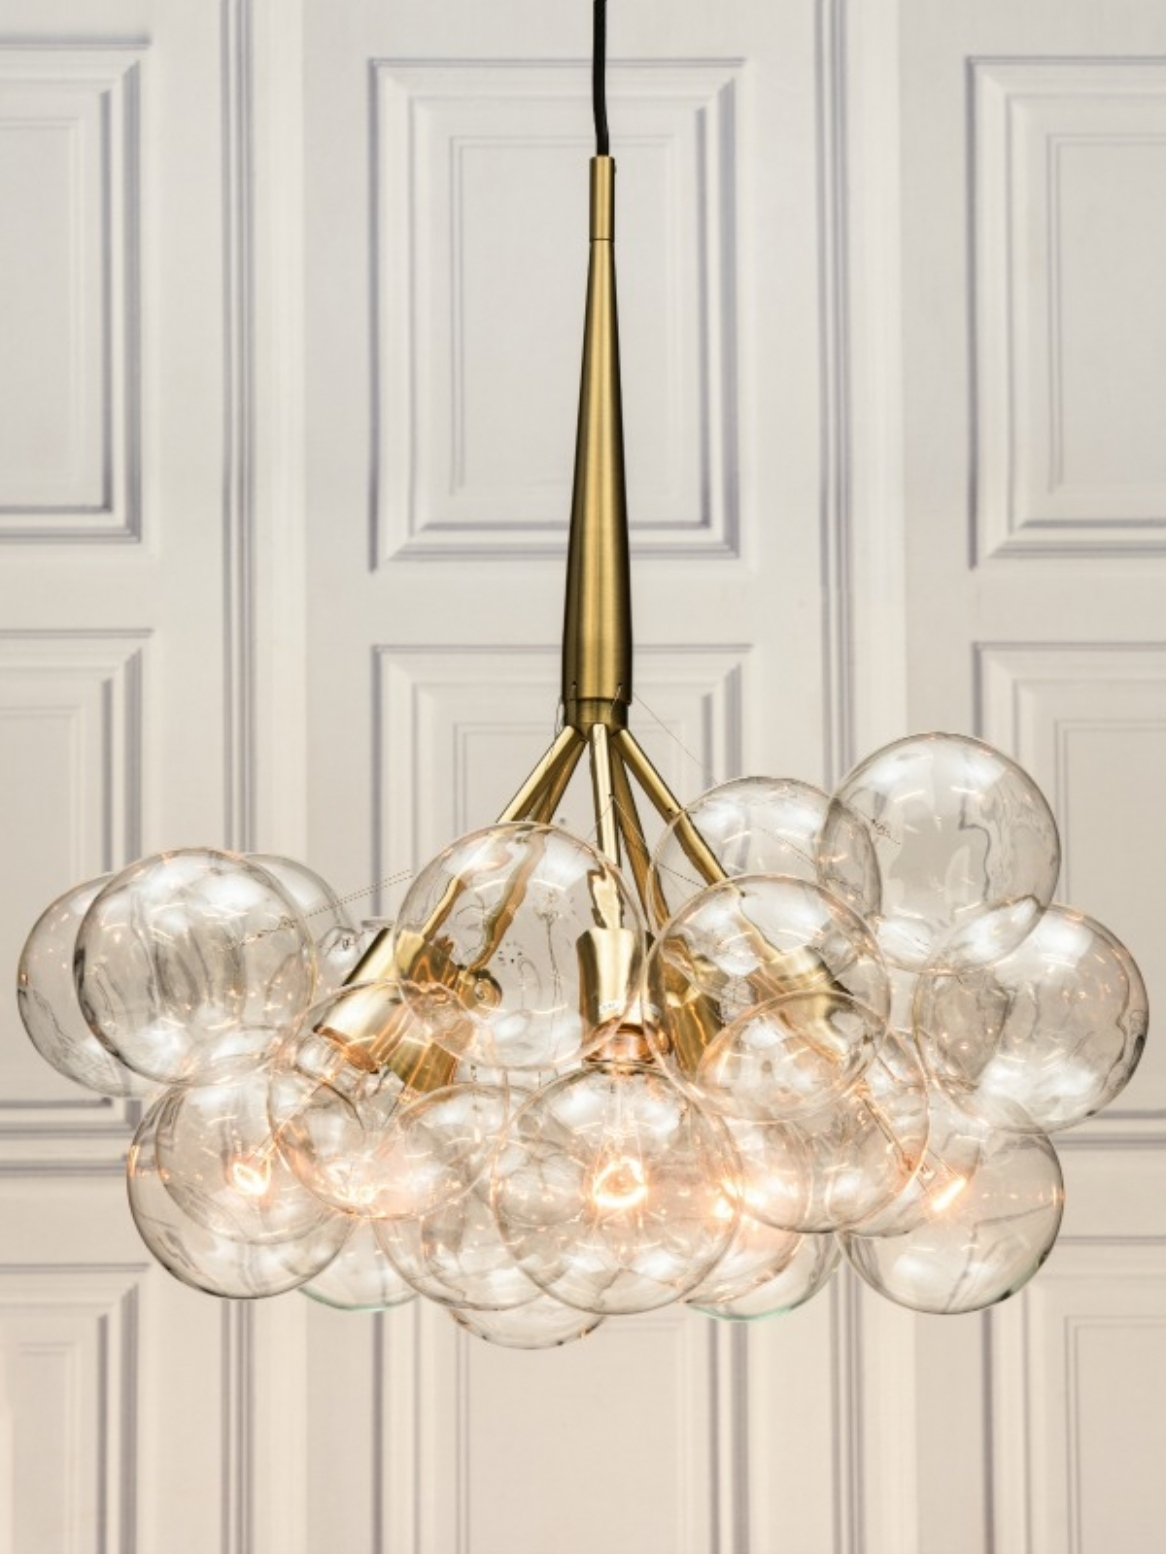 Chandeliers Design : Amazing Large Glass Globe Chandelier Retro With Current Large Glass Chandelier (View 15 of 20)